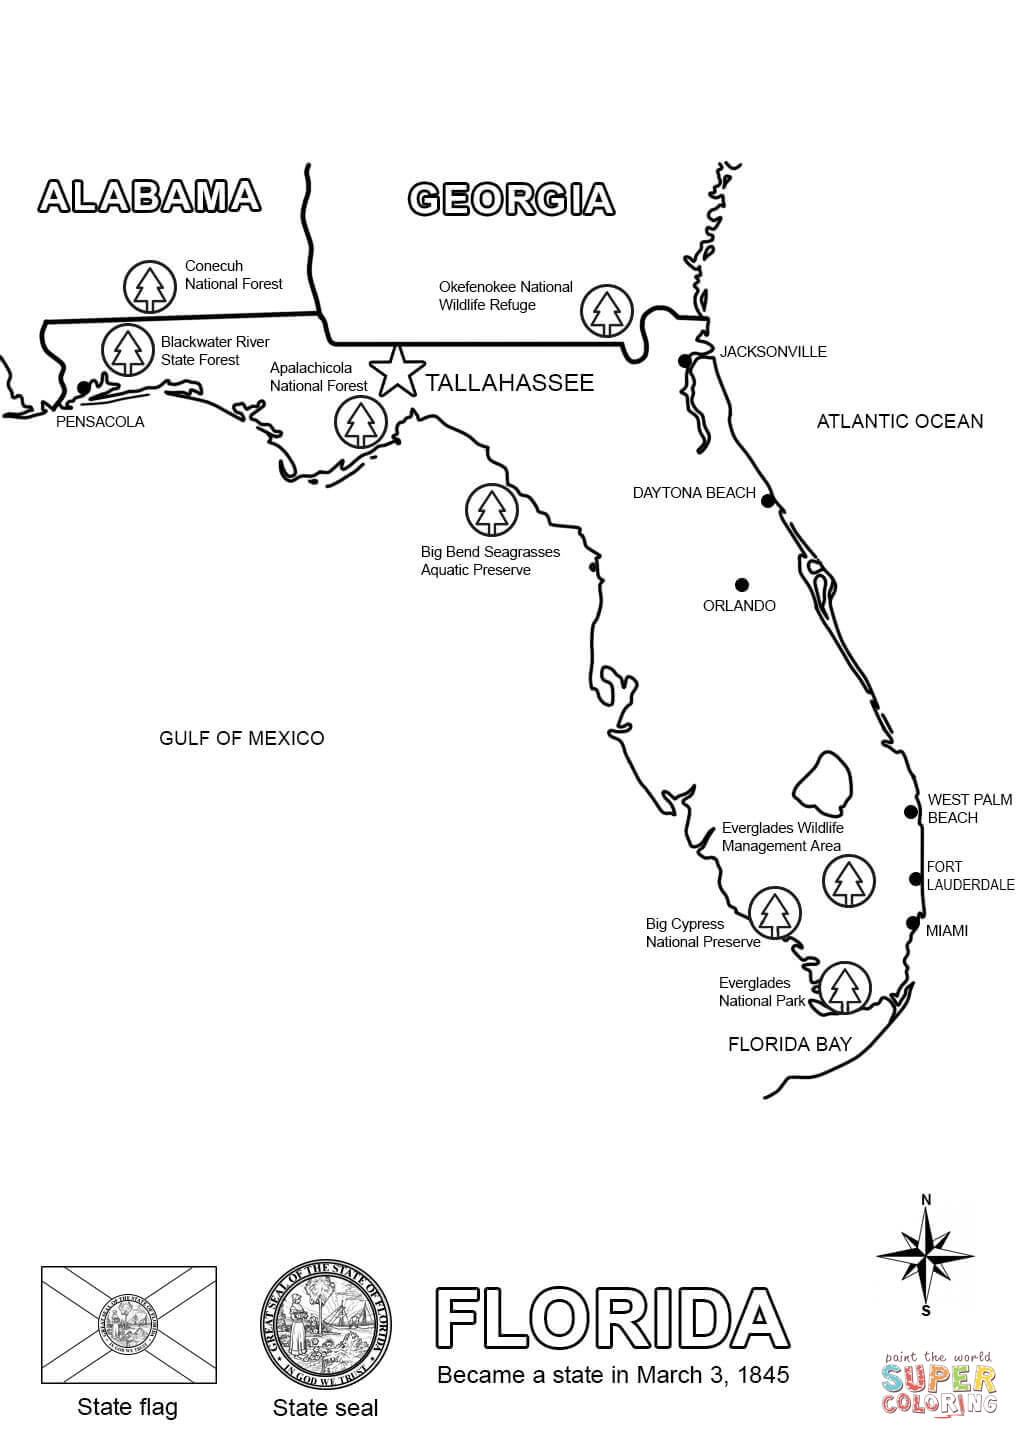 Florida Map Coloring Page | Free Printable Coloring Pages - Free Florida Map